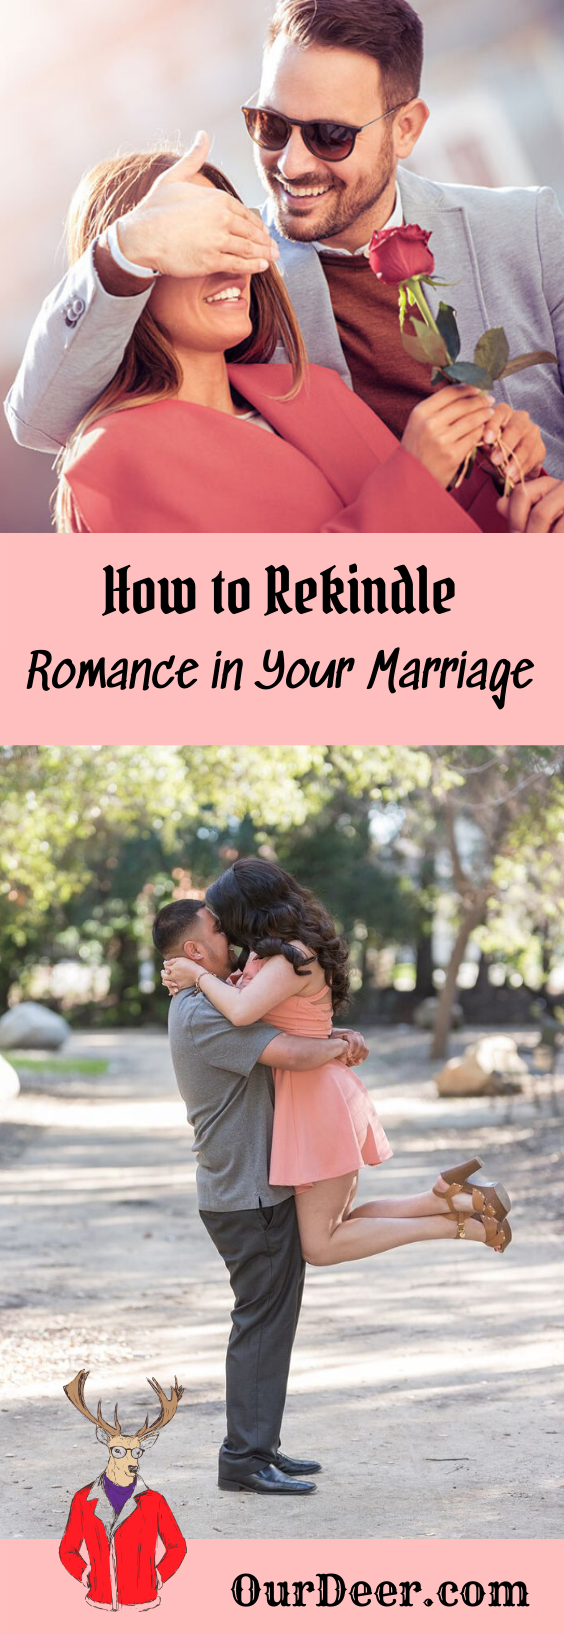 How To Rekindle Romance In Your Marriage   Our Deer